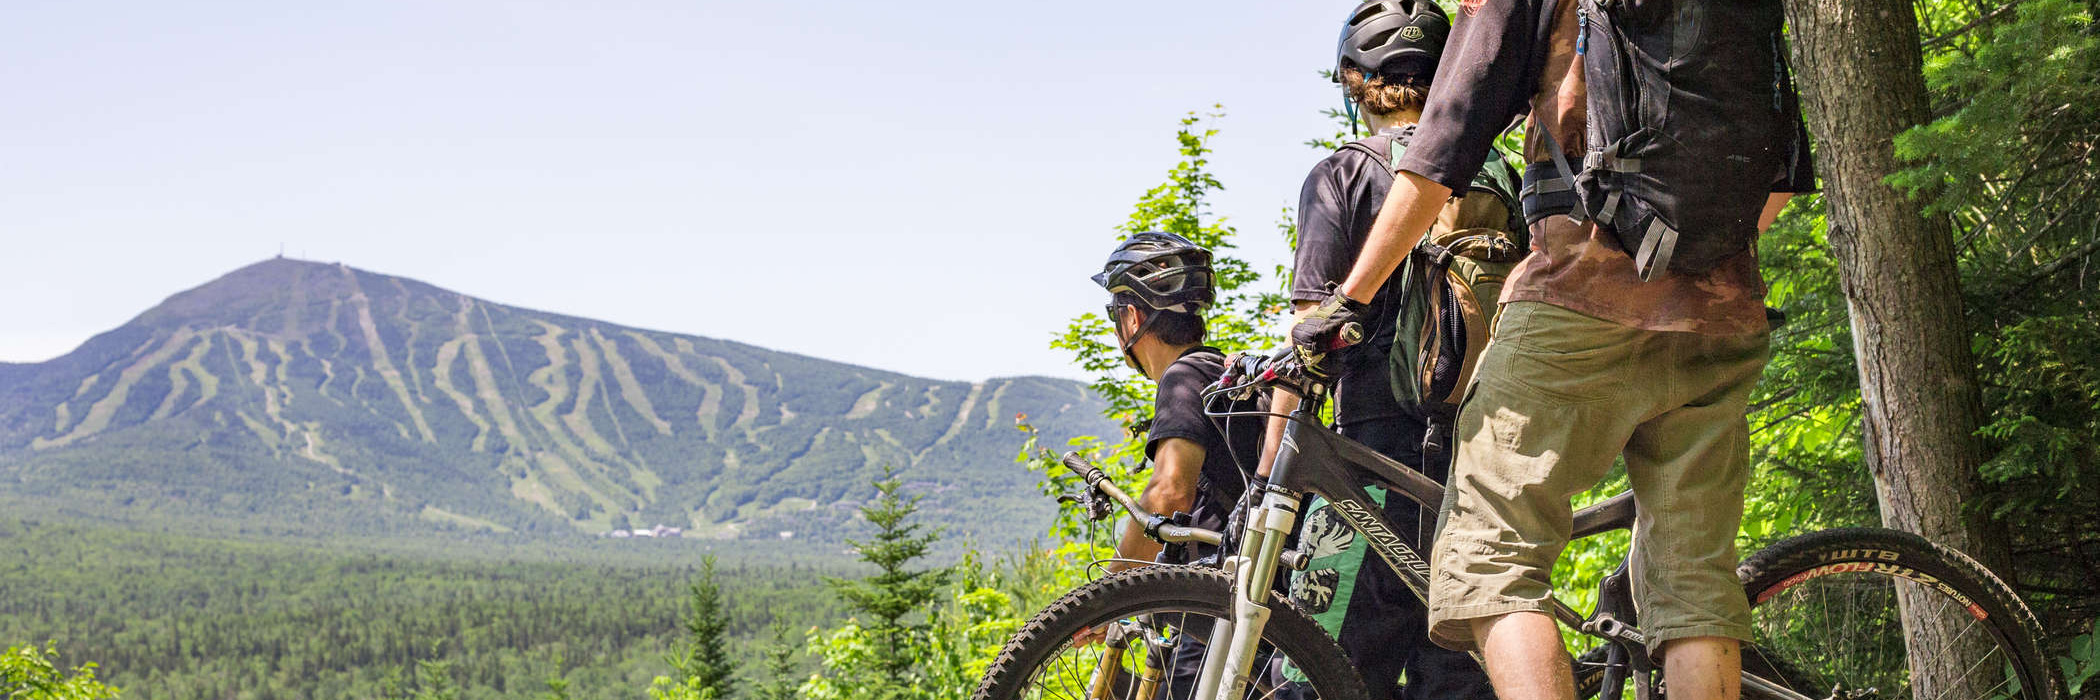 Carrabassett Valley Mountain Biking